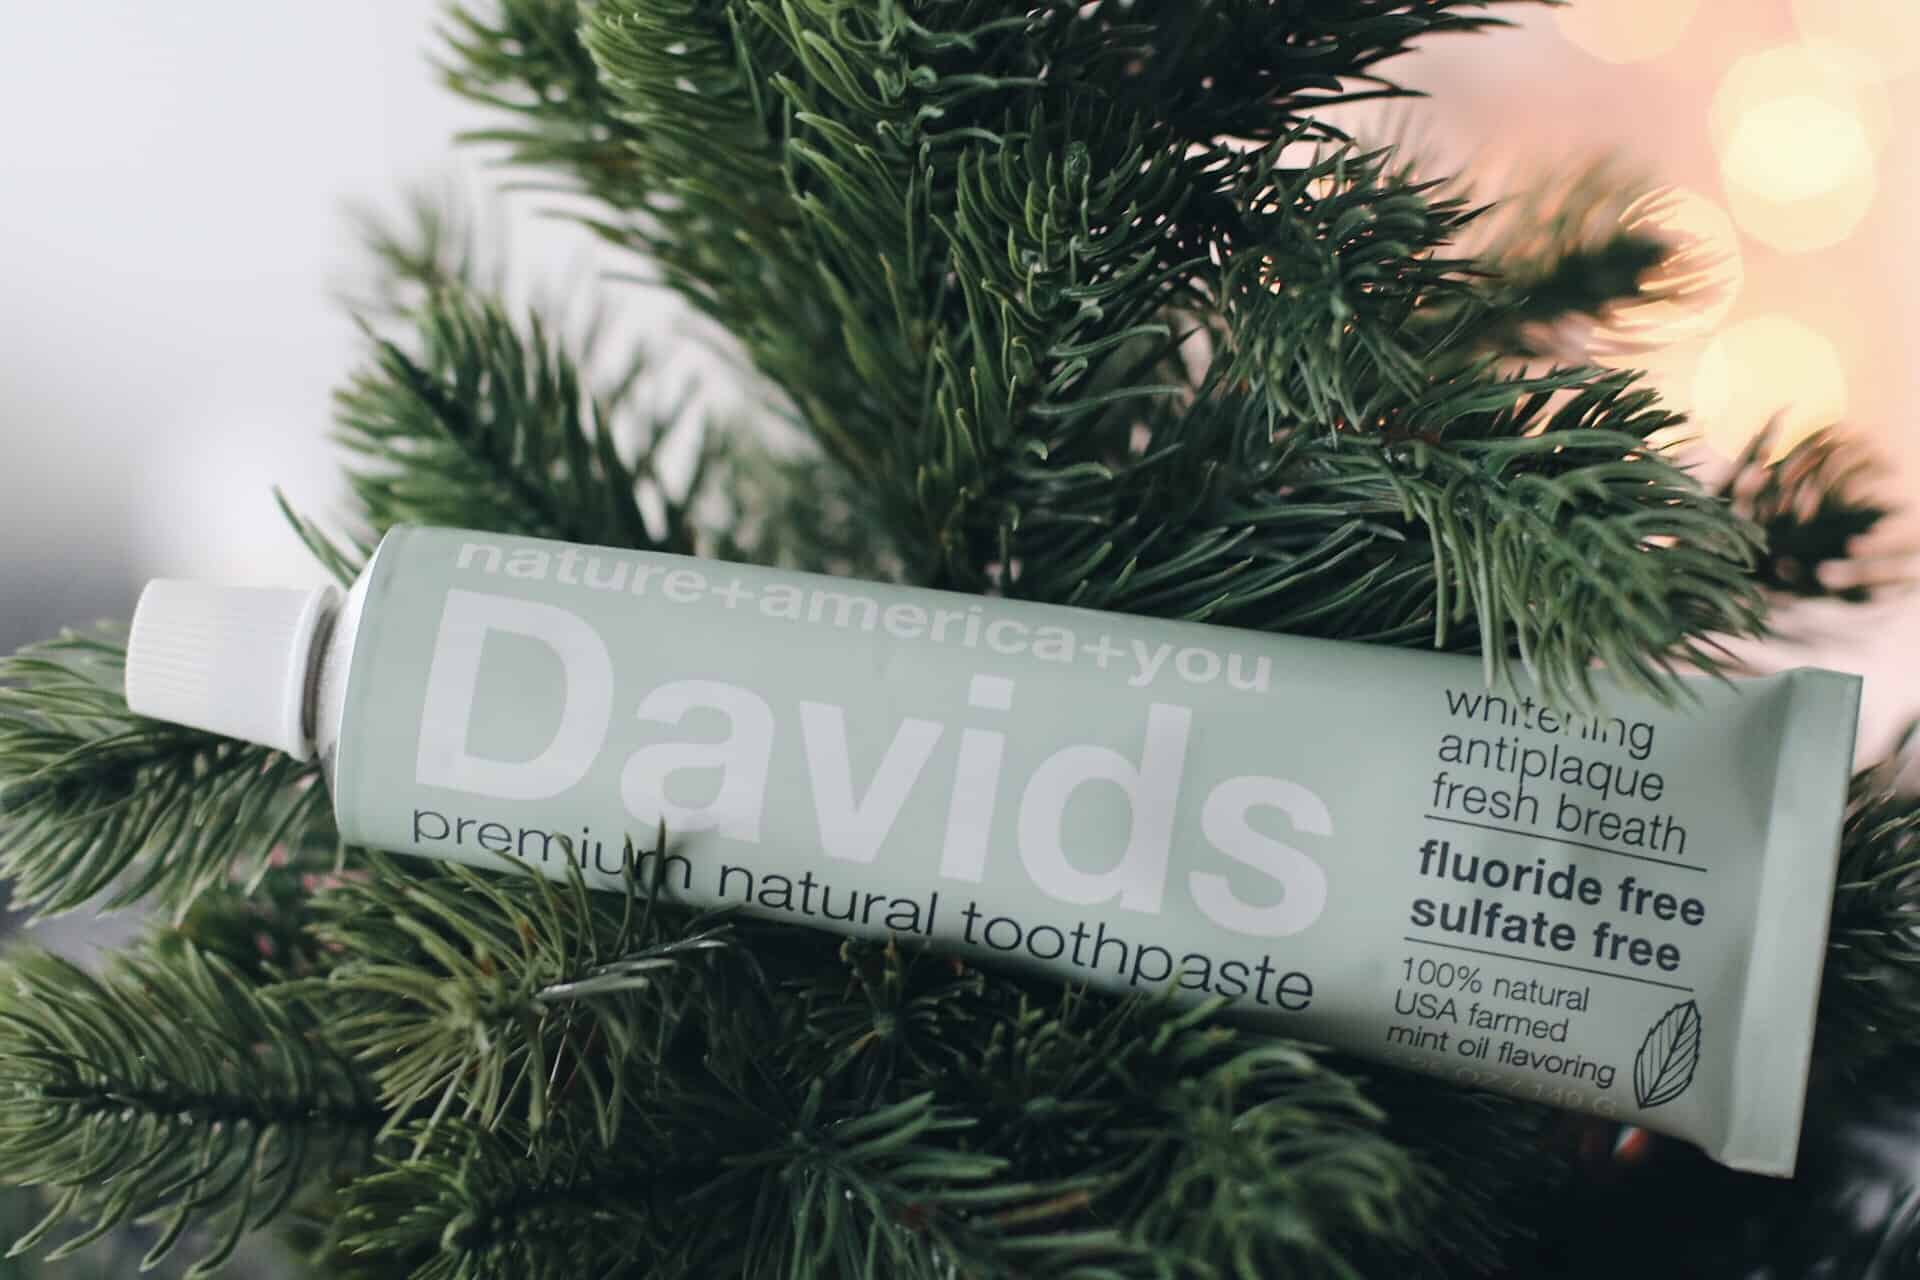 Best holiday gift ideas for clean beauty lovers | Christmas gift guide for makeup and skincare lovers | top green beauty products | Diary of a Toronto Girl, a Canadian lifestyle blog